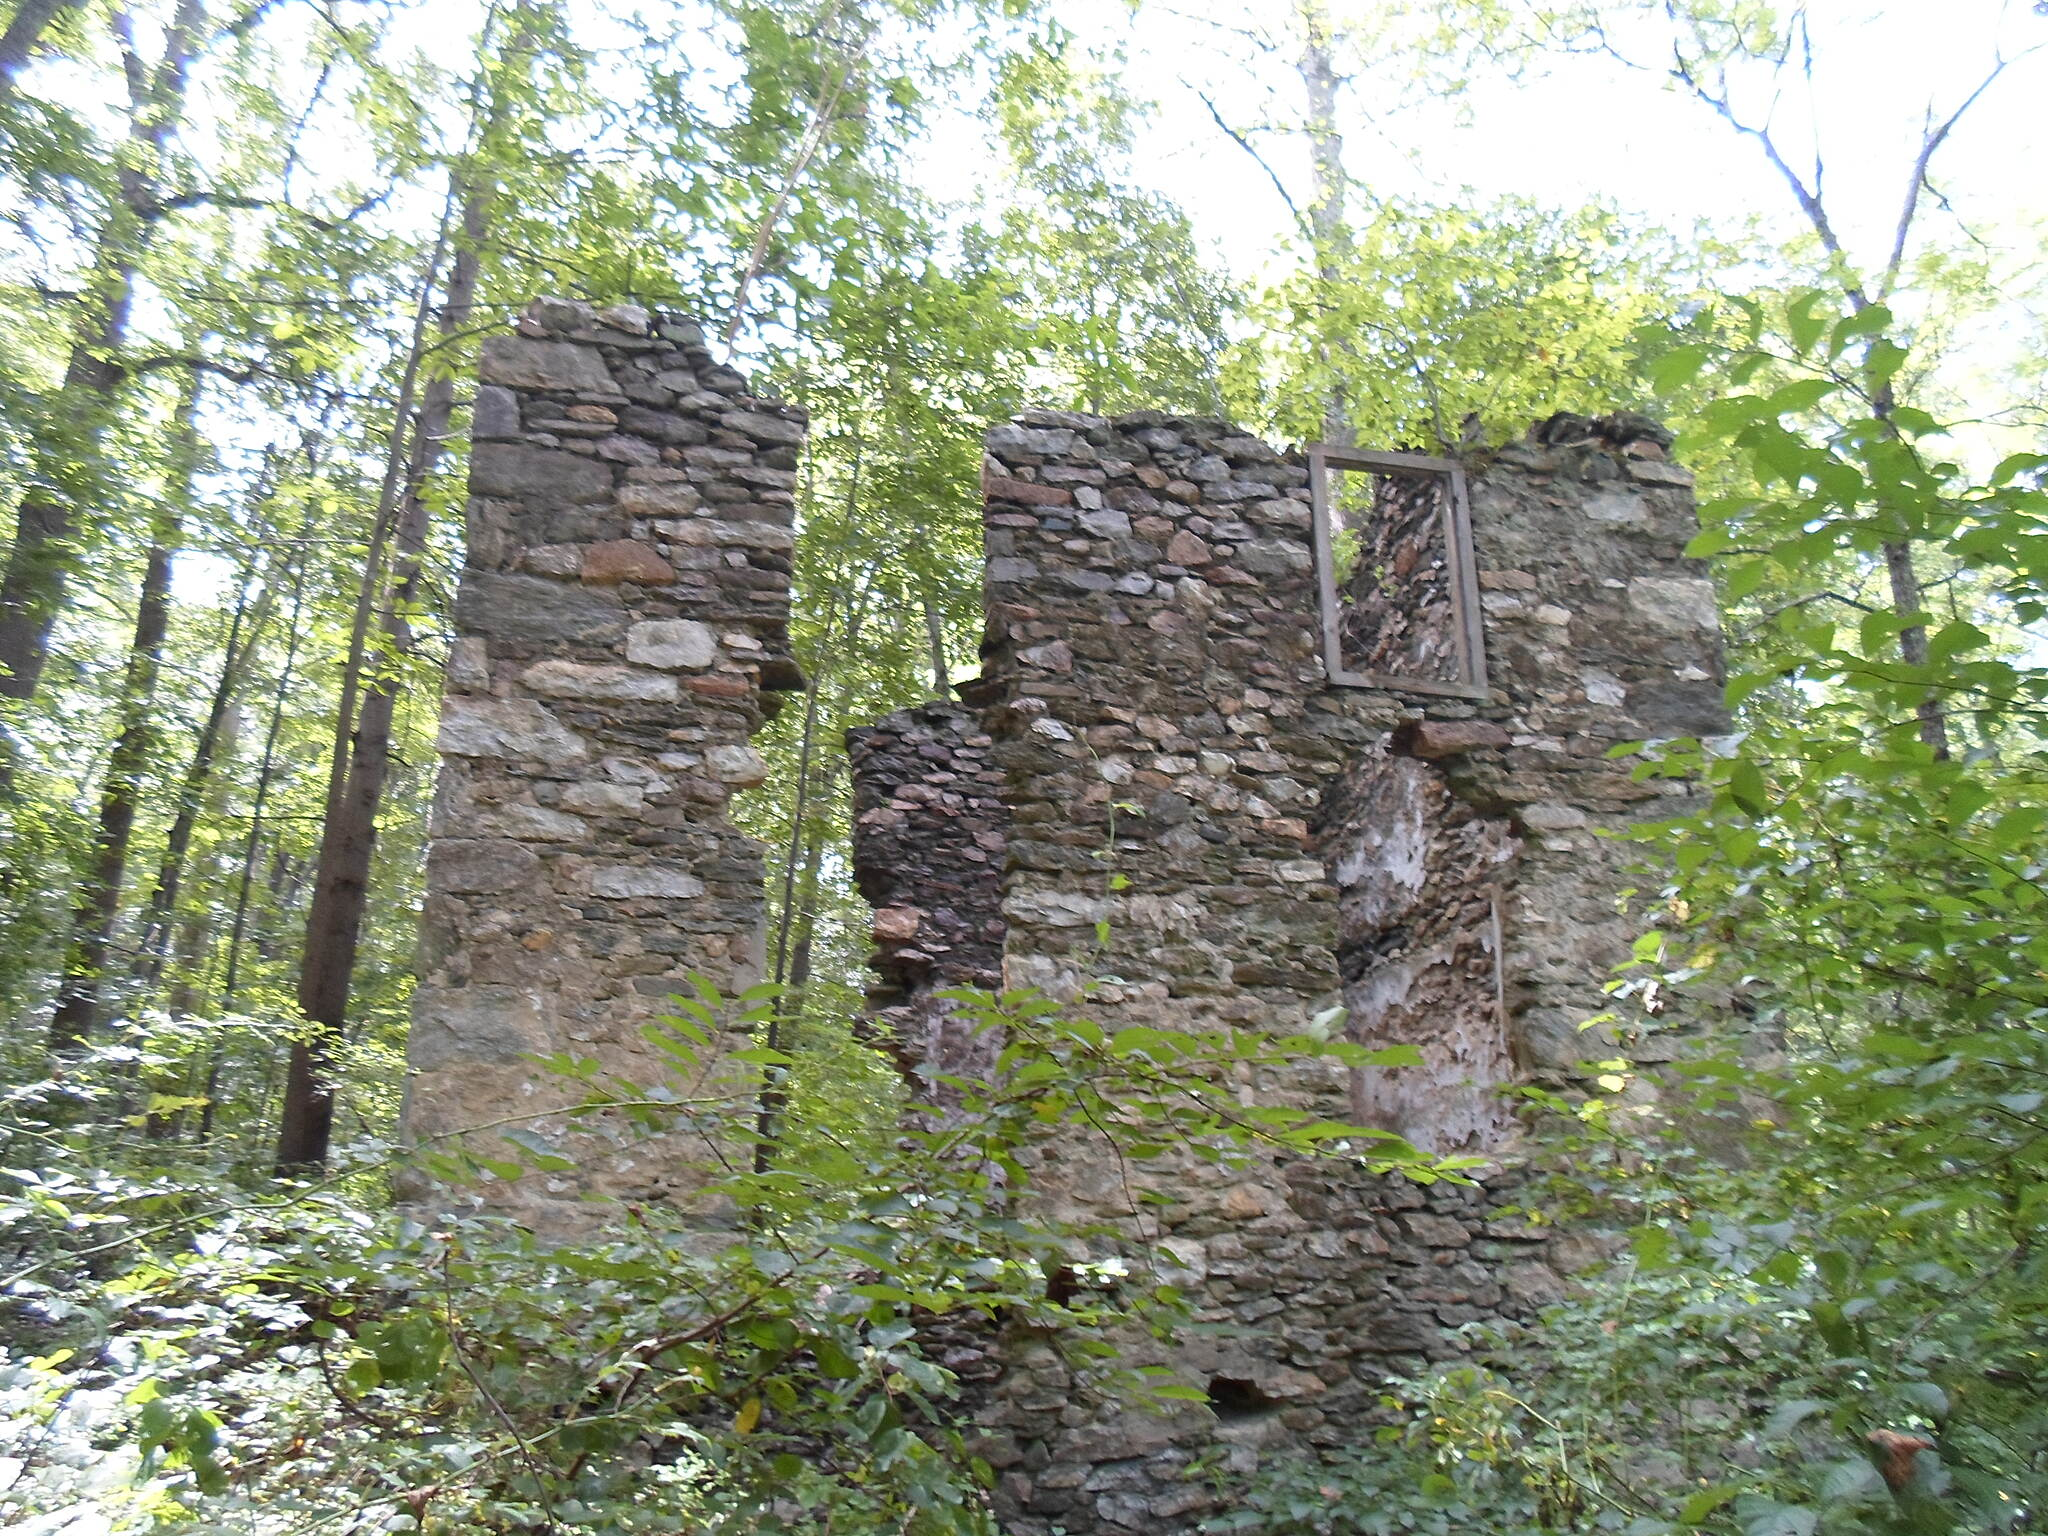 Springlawn Trail Springlawn Trail Another view of the ruins of the old stone house. Taken Sept. 2016.